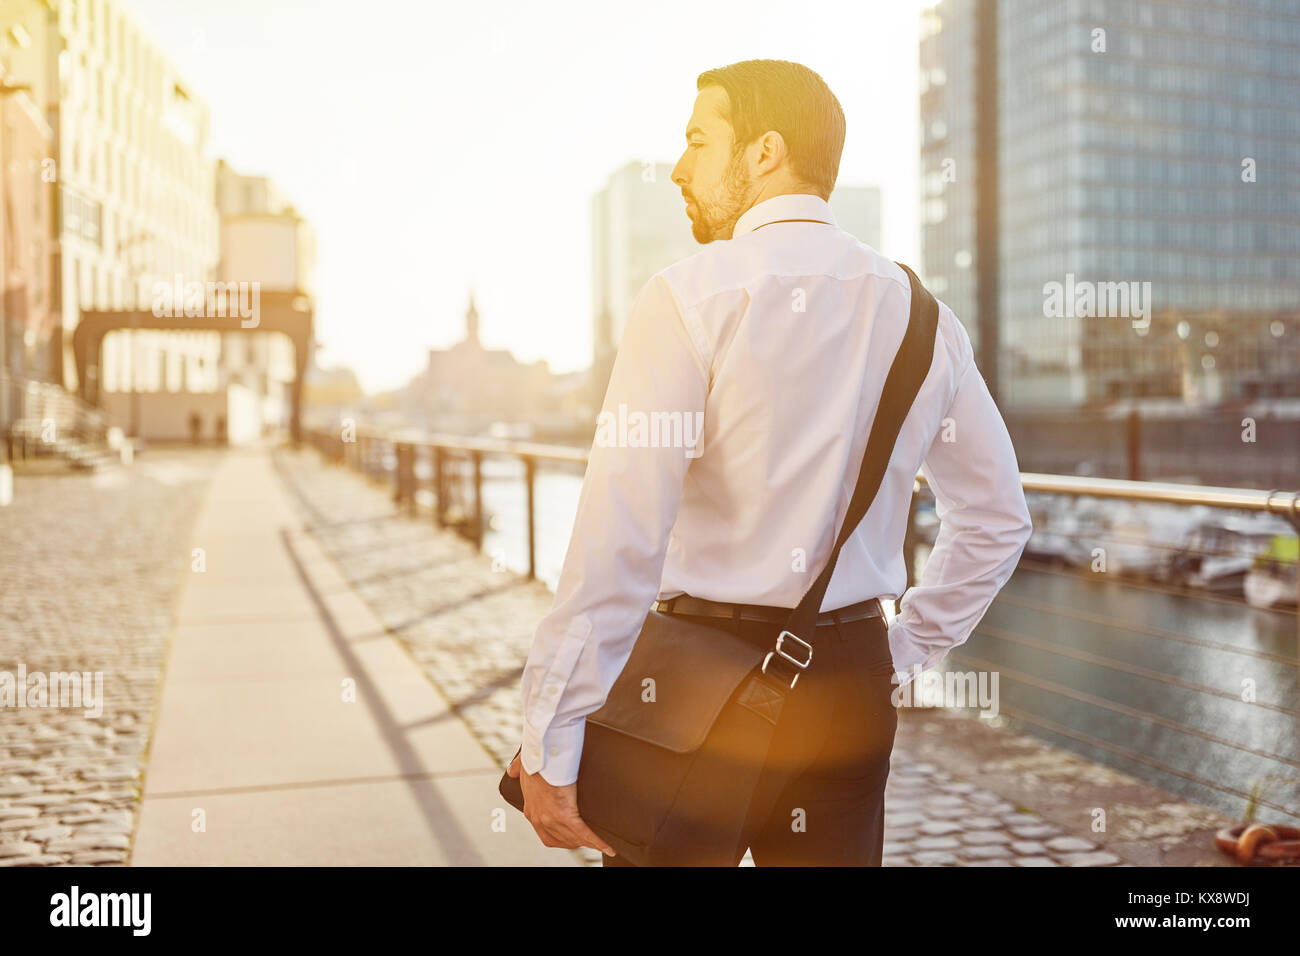 Business man as commuter on the way home in summer - Stock Image